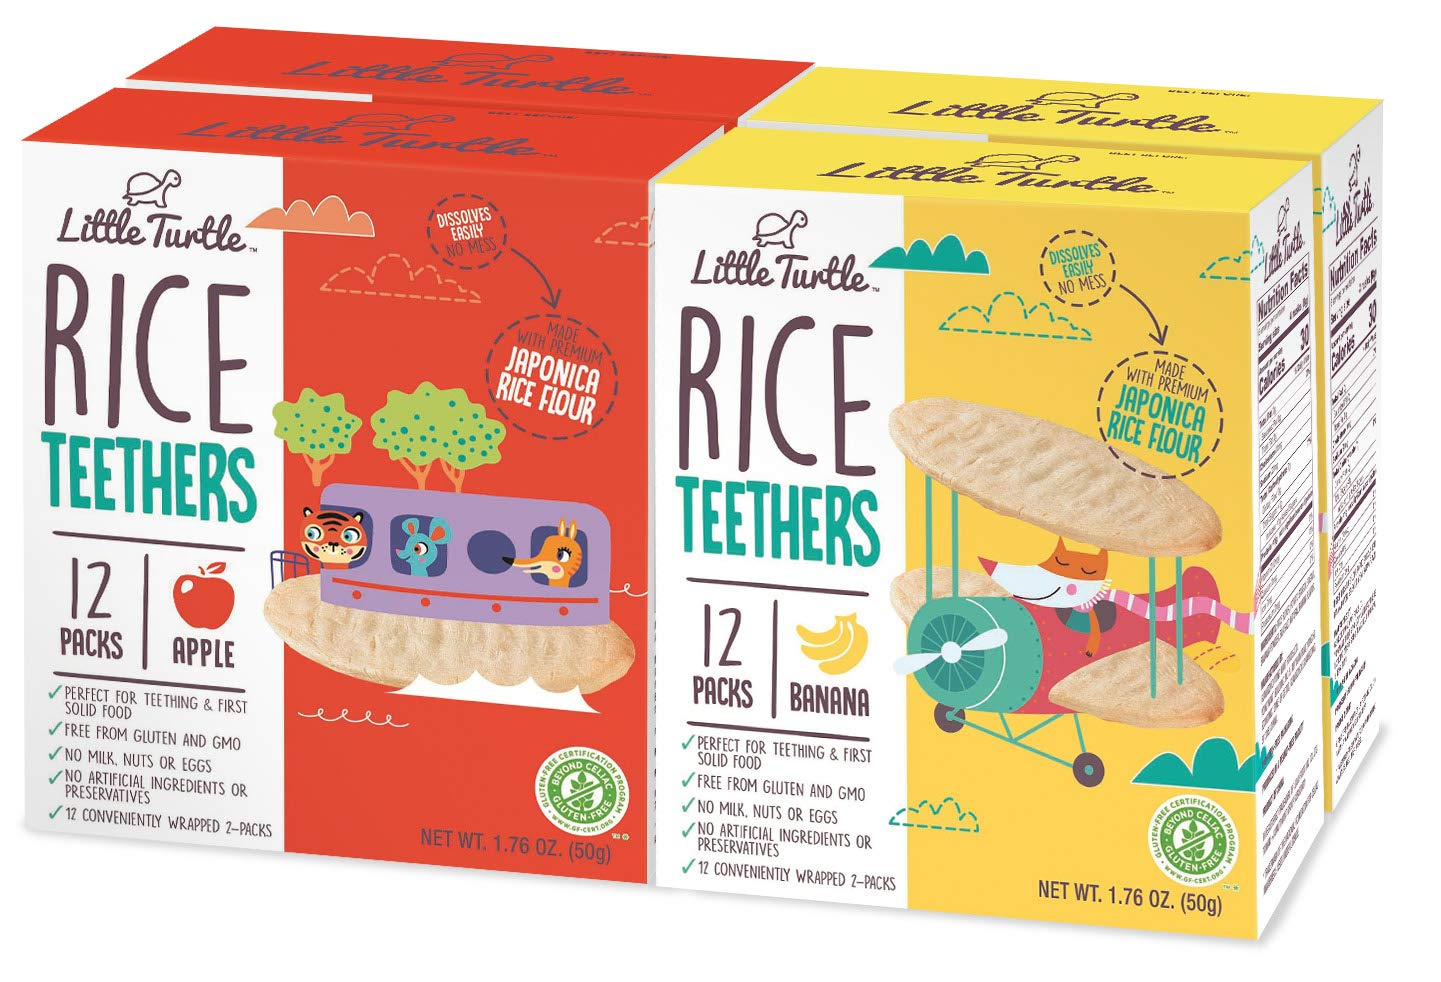 Little Turtle Rice Teethers Combo Pack, Apple & Banana Flavor, 12 wrapped 2 Pack, 4 Count